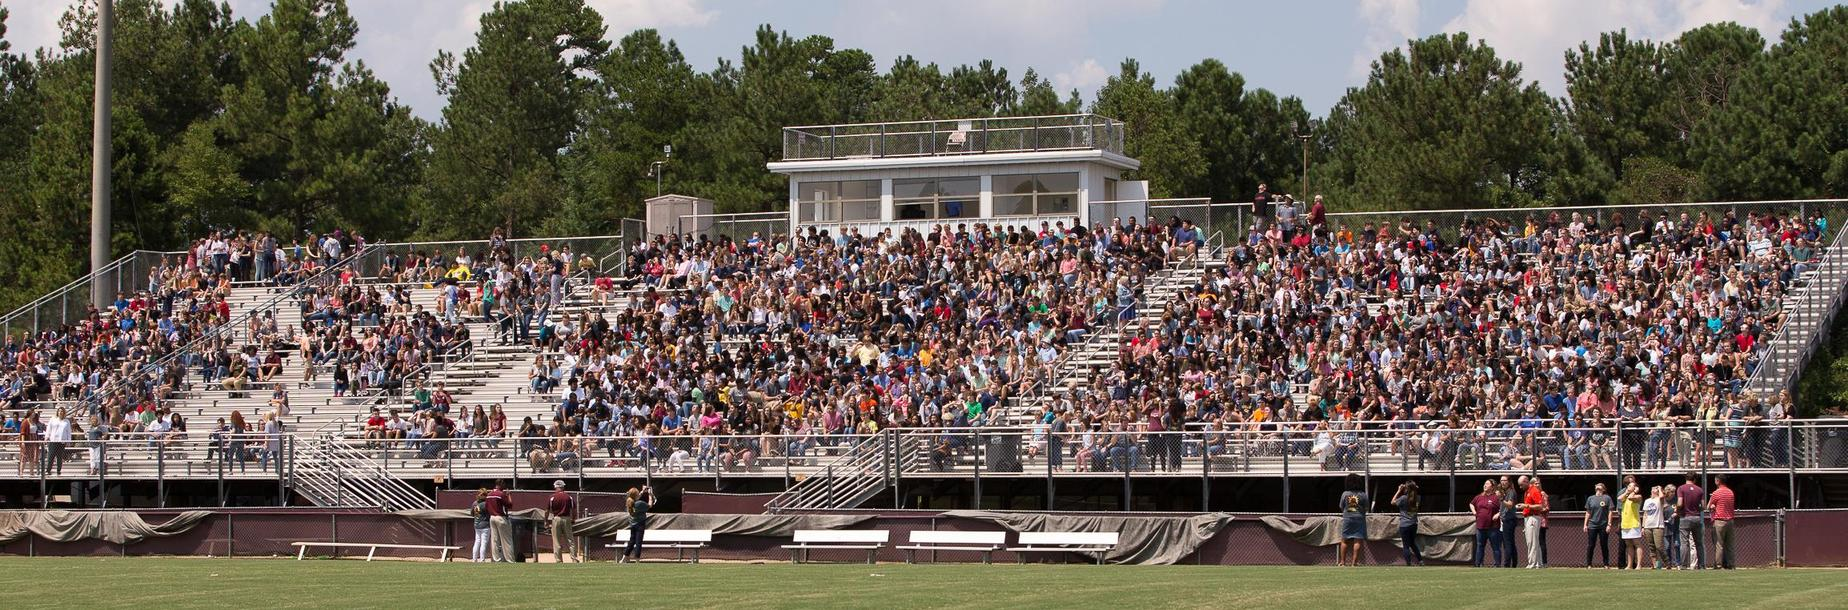 students in the stands at the football stadium